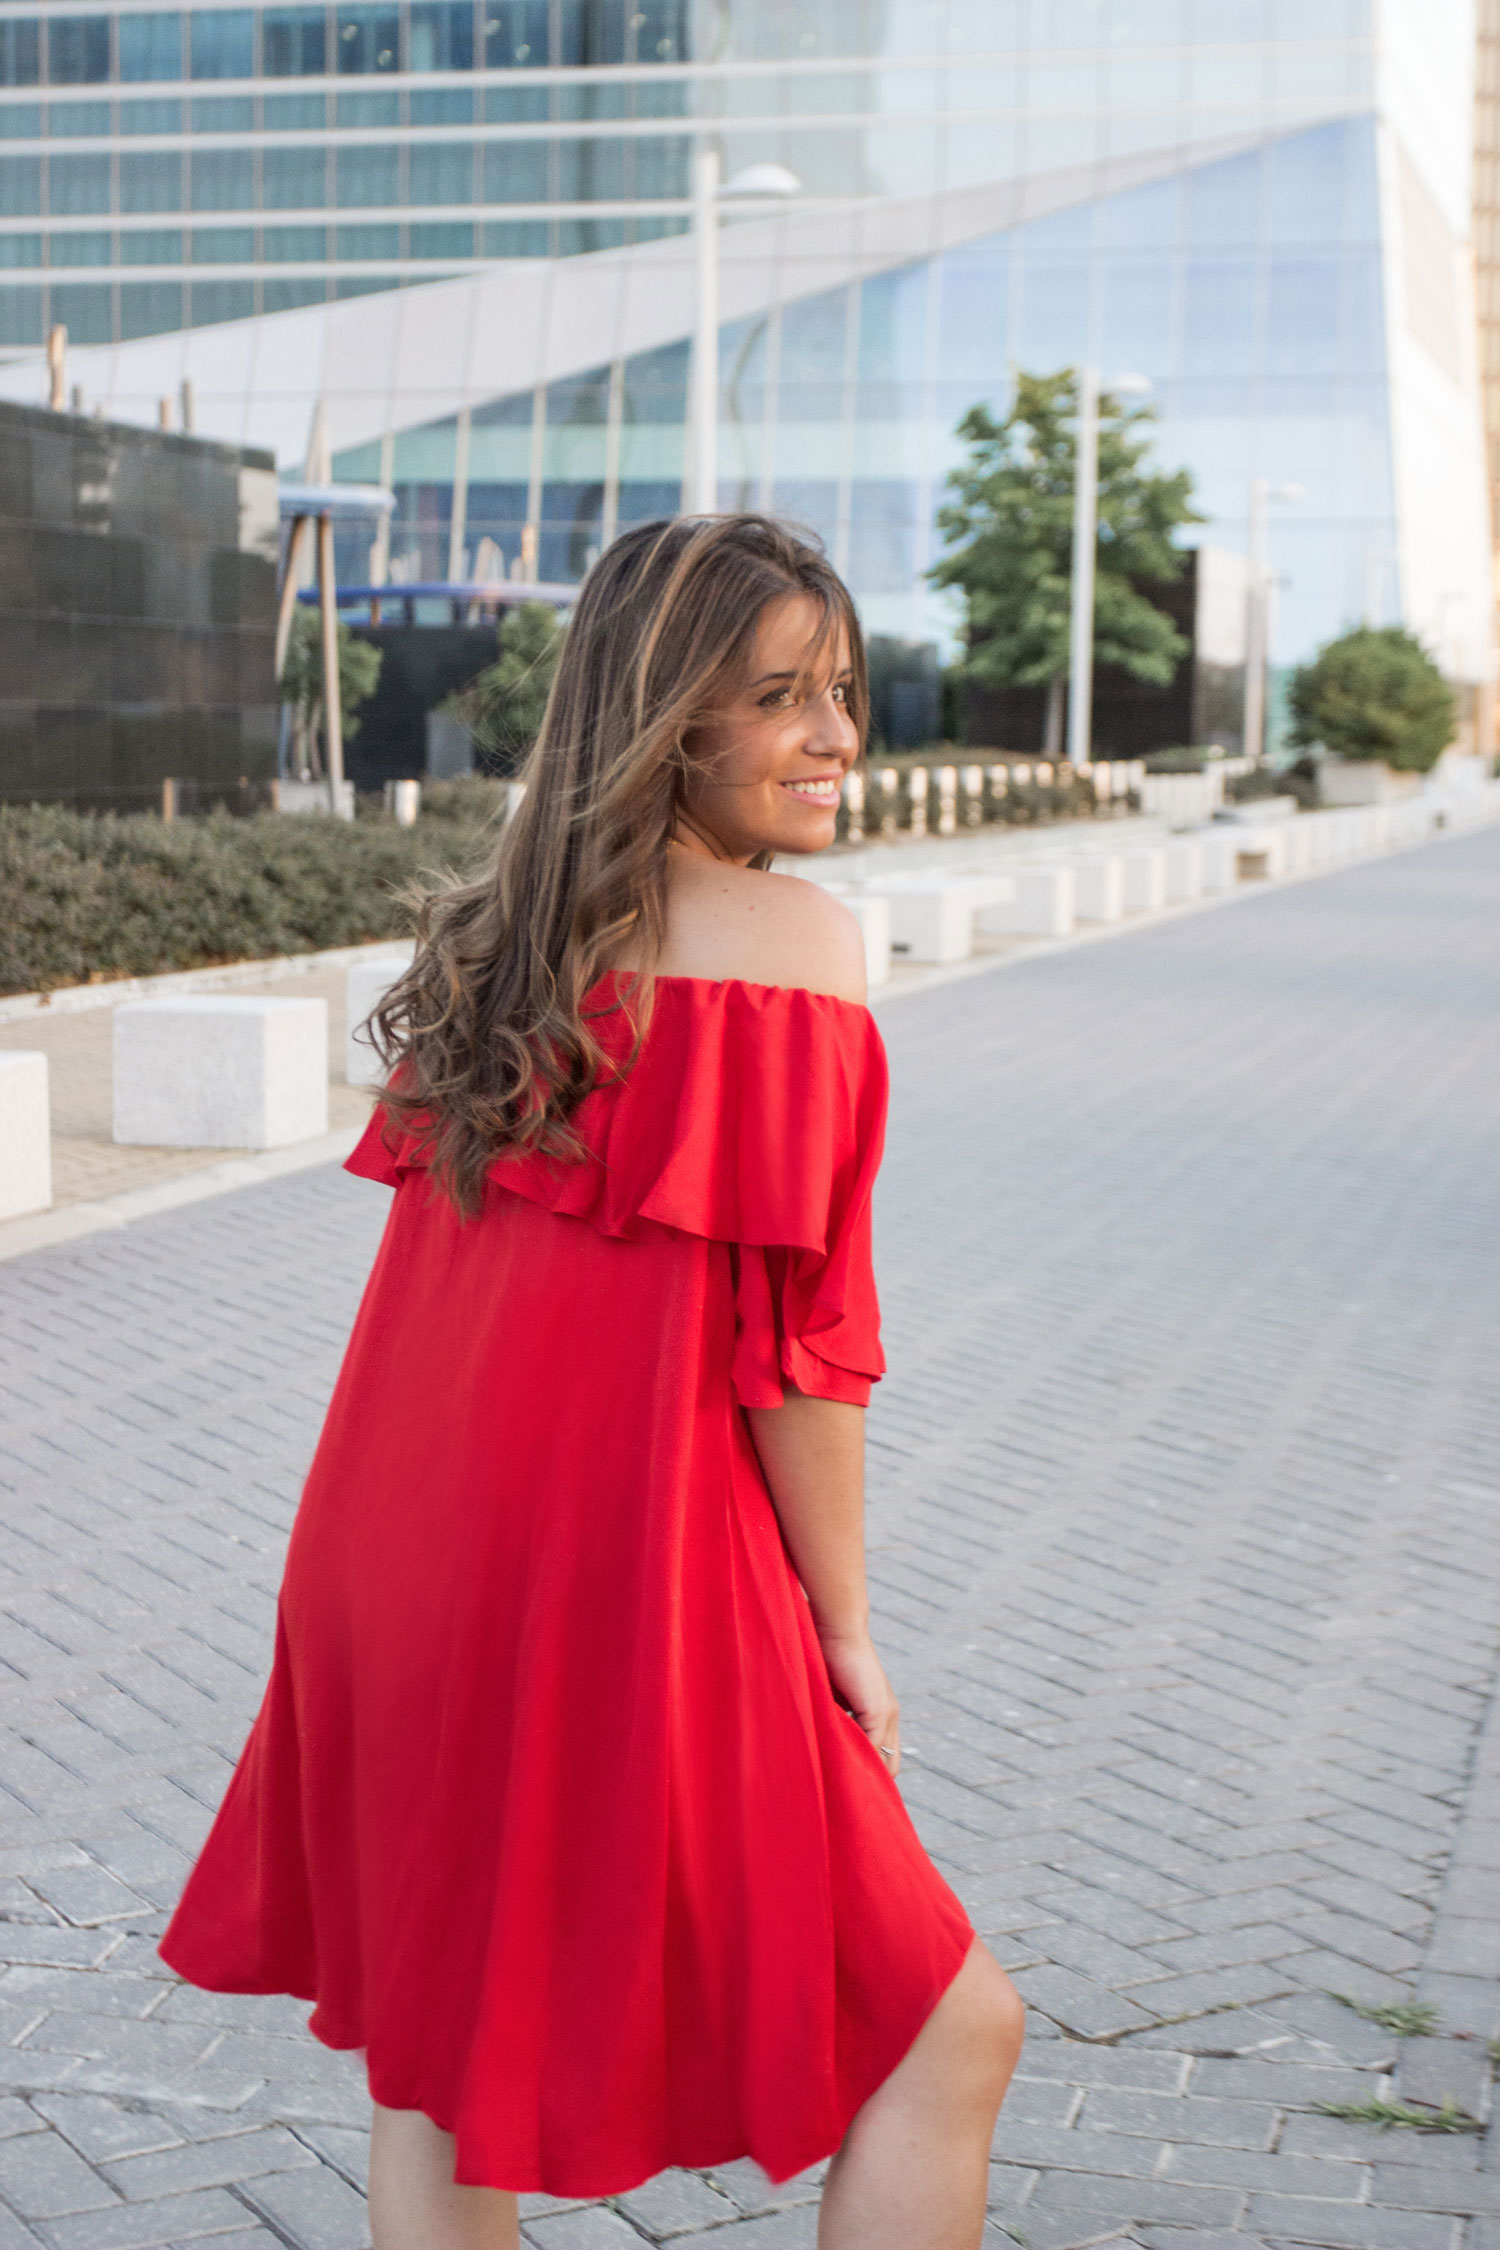 madeinstyle_she_in_red_dress_vestido_rojo_summer_closs_earrings-4